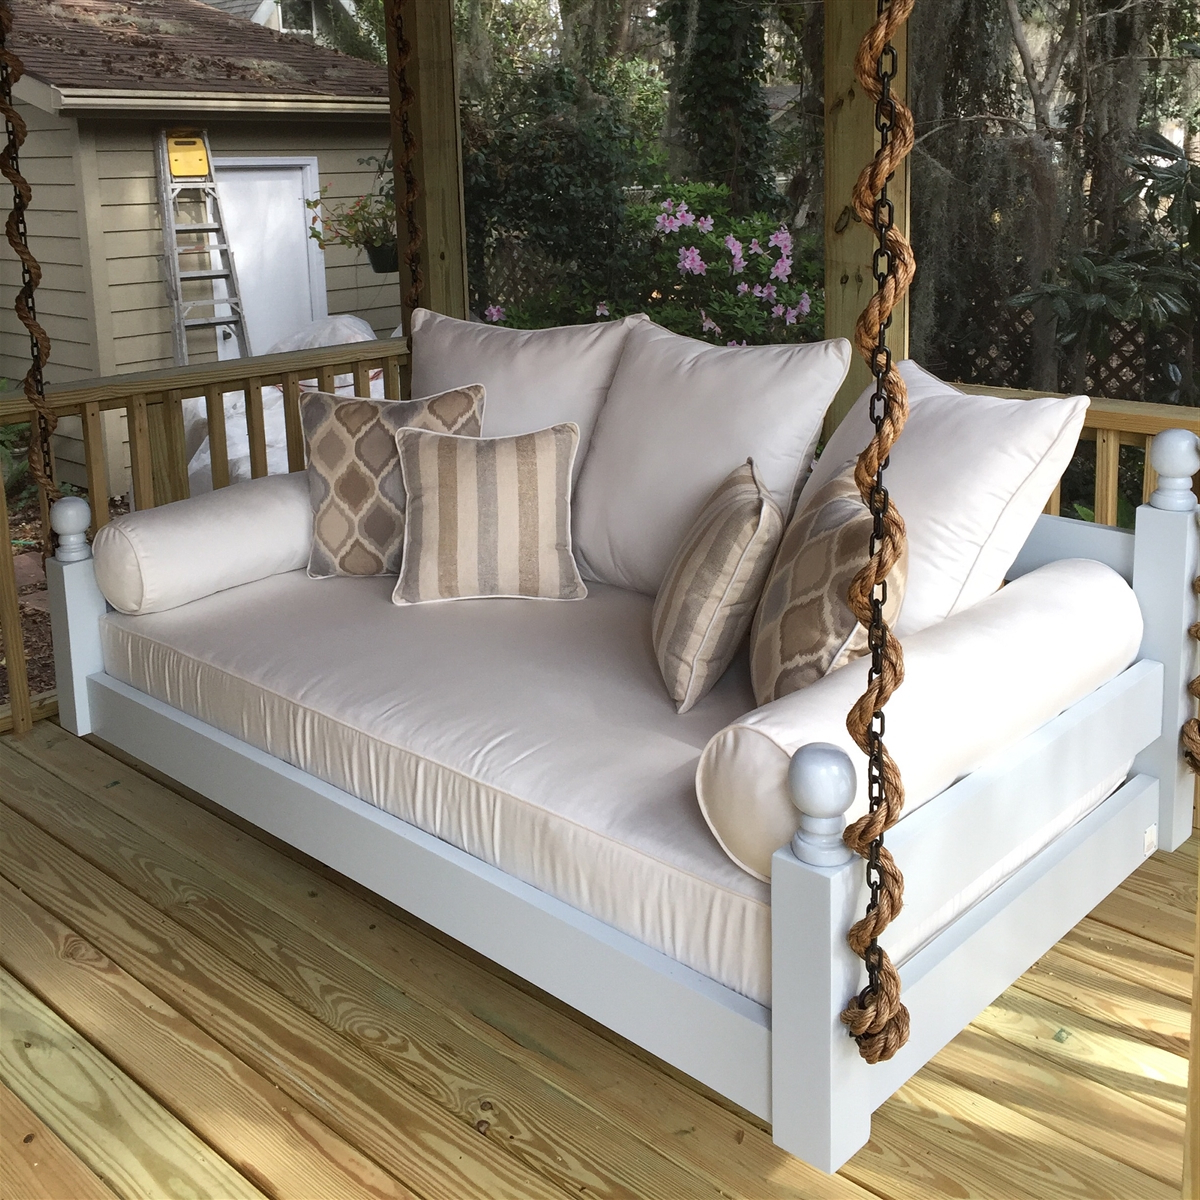 Great And Fun Ideas Porch Swing Bed Throughout Favorite Day Bed Porch Swings (Gallery 14 of 25)